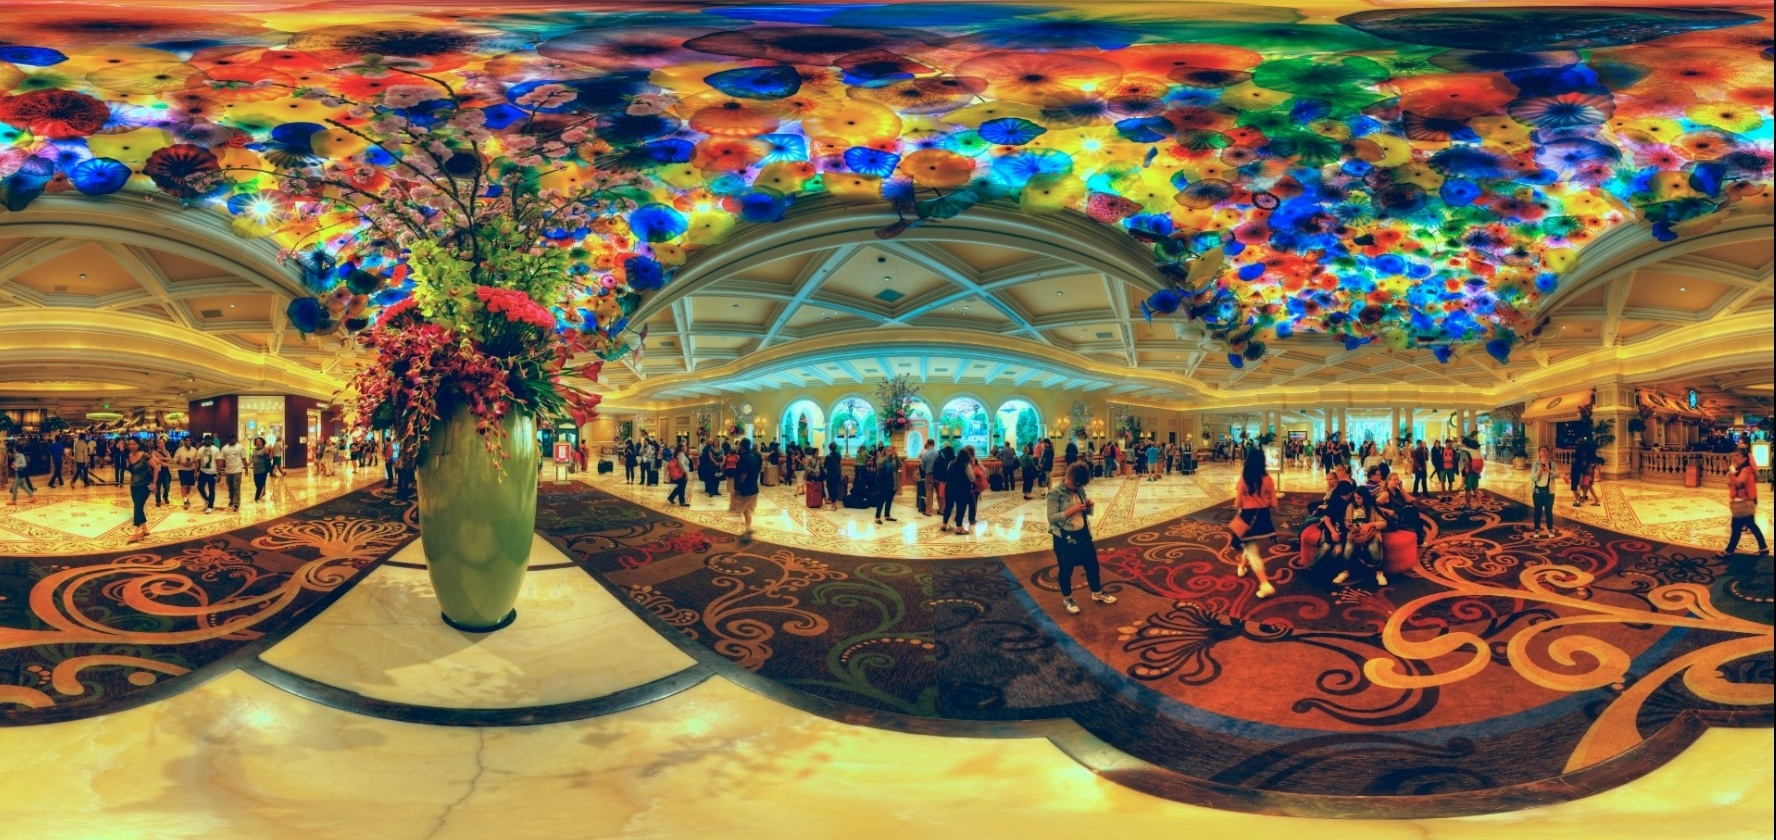 Dale Chihuly Glass Sculpture in the Bellagio Hotel Lobby.